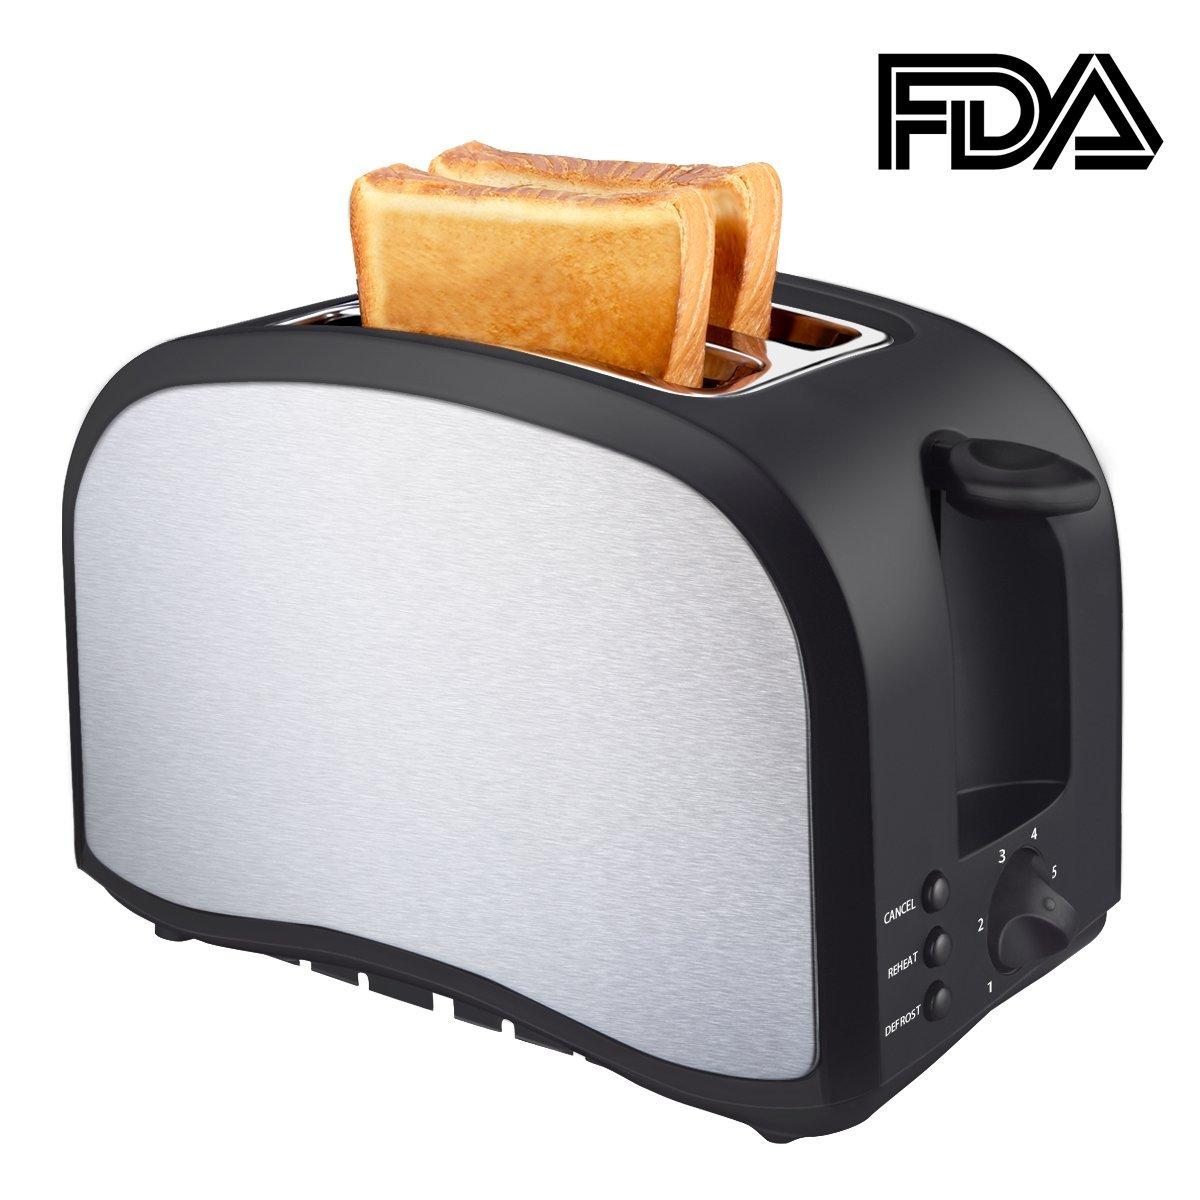 Toaster Top Rated Best Prime 2 Slice Compact Brushed Stainless Steel Bread Toasters Quickly Toasts